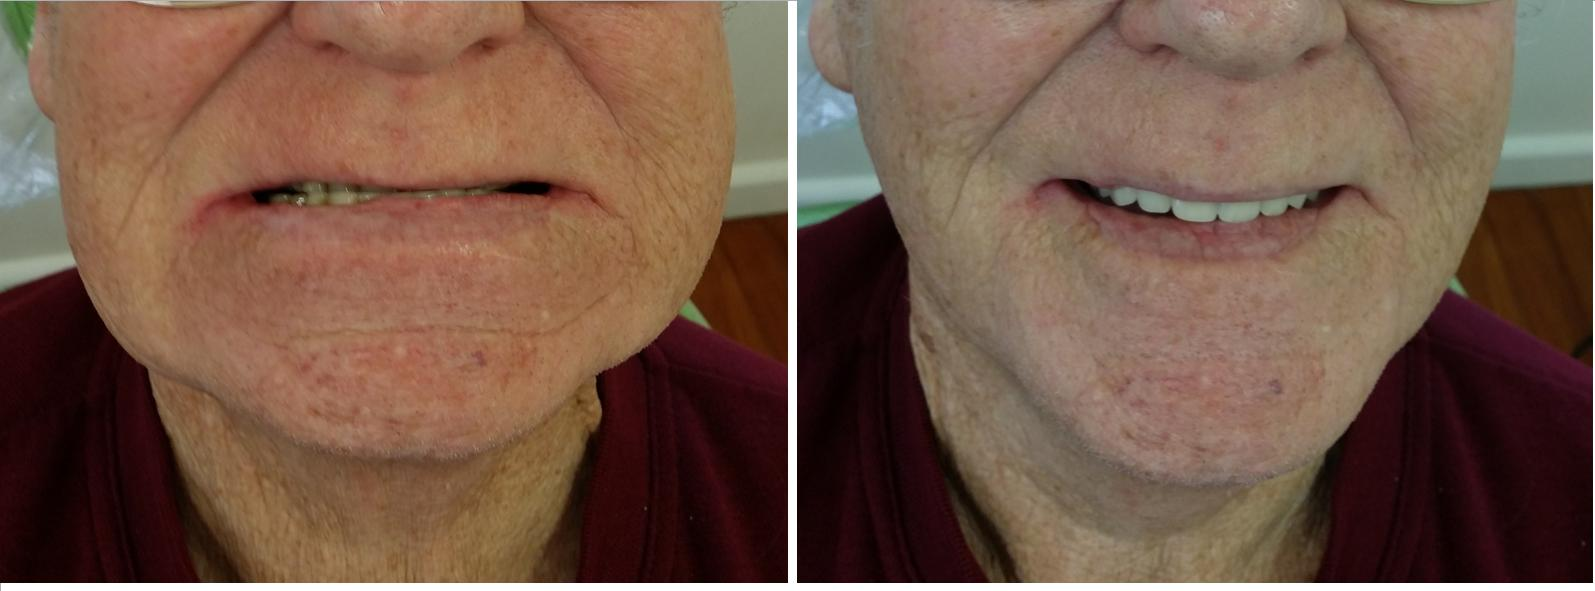 Faceover with new dentures